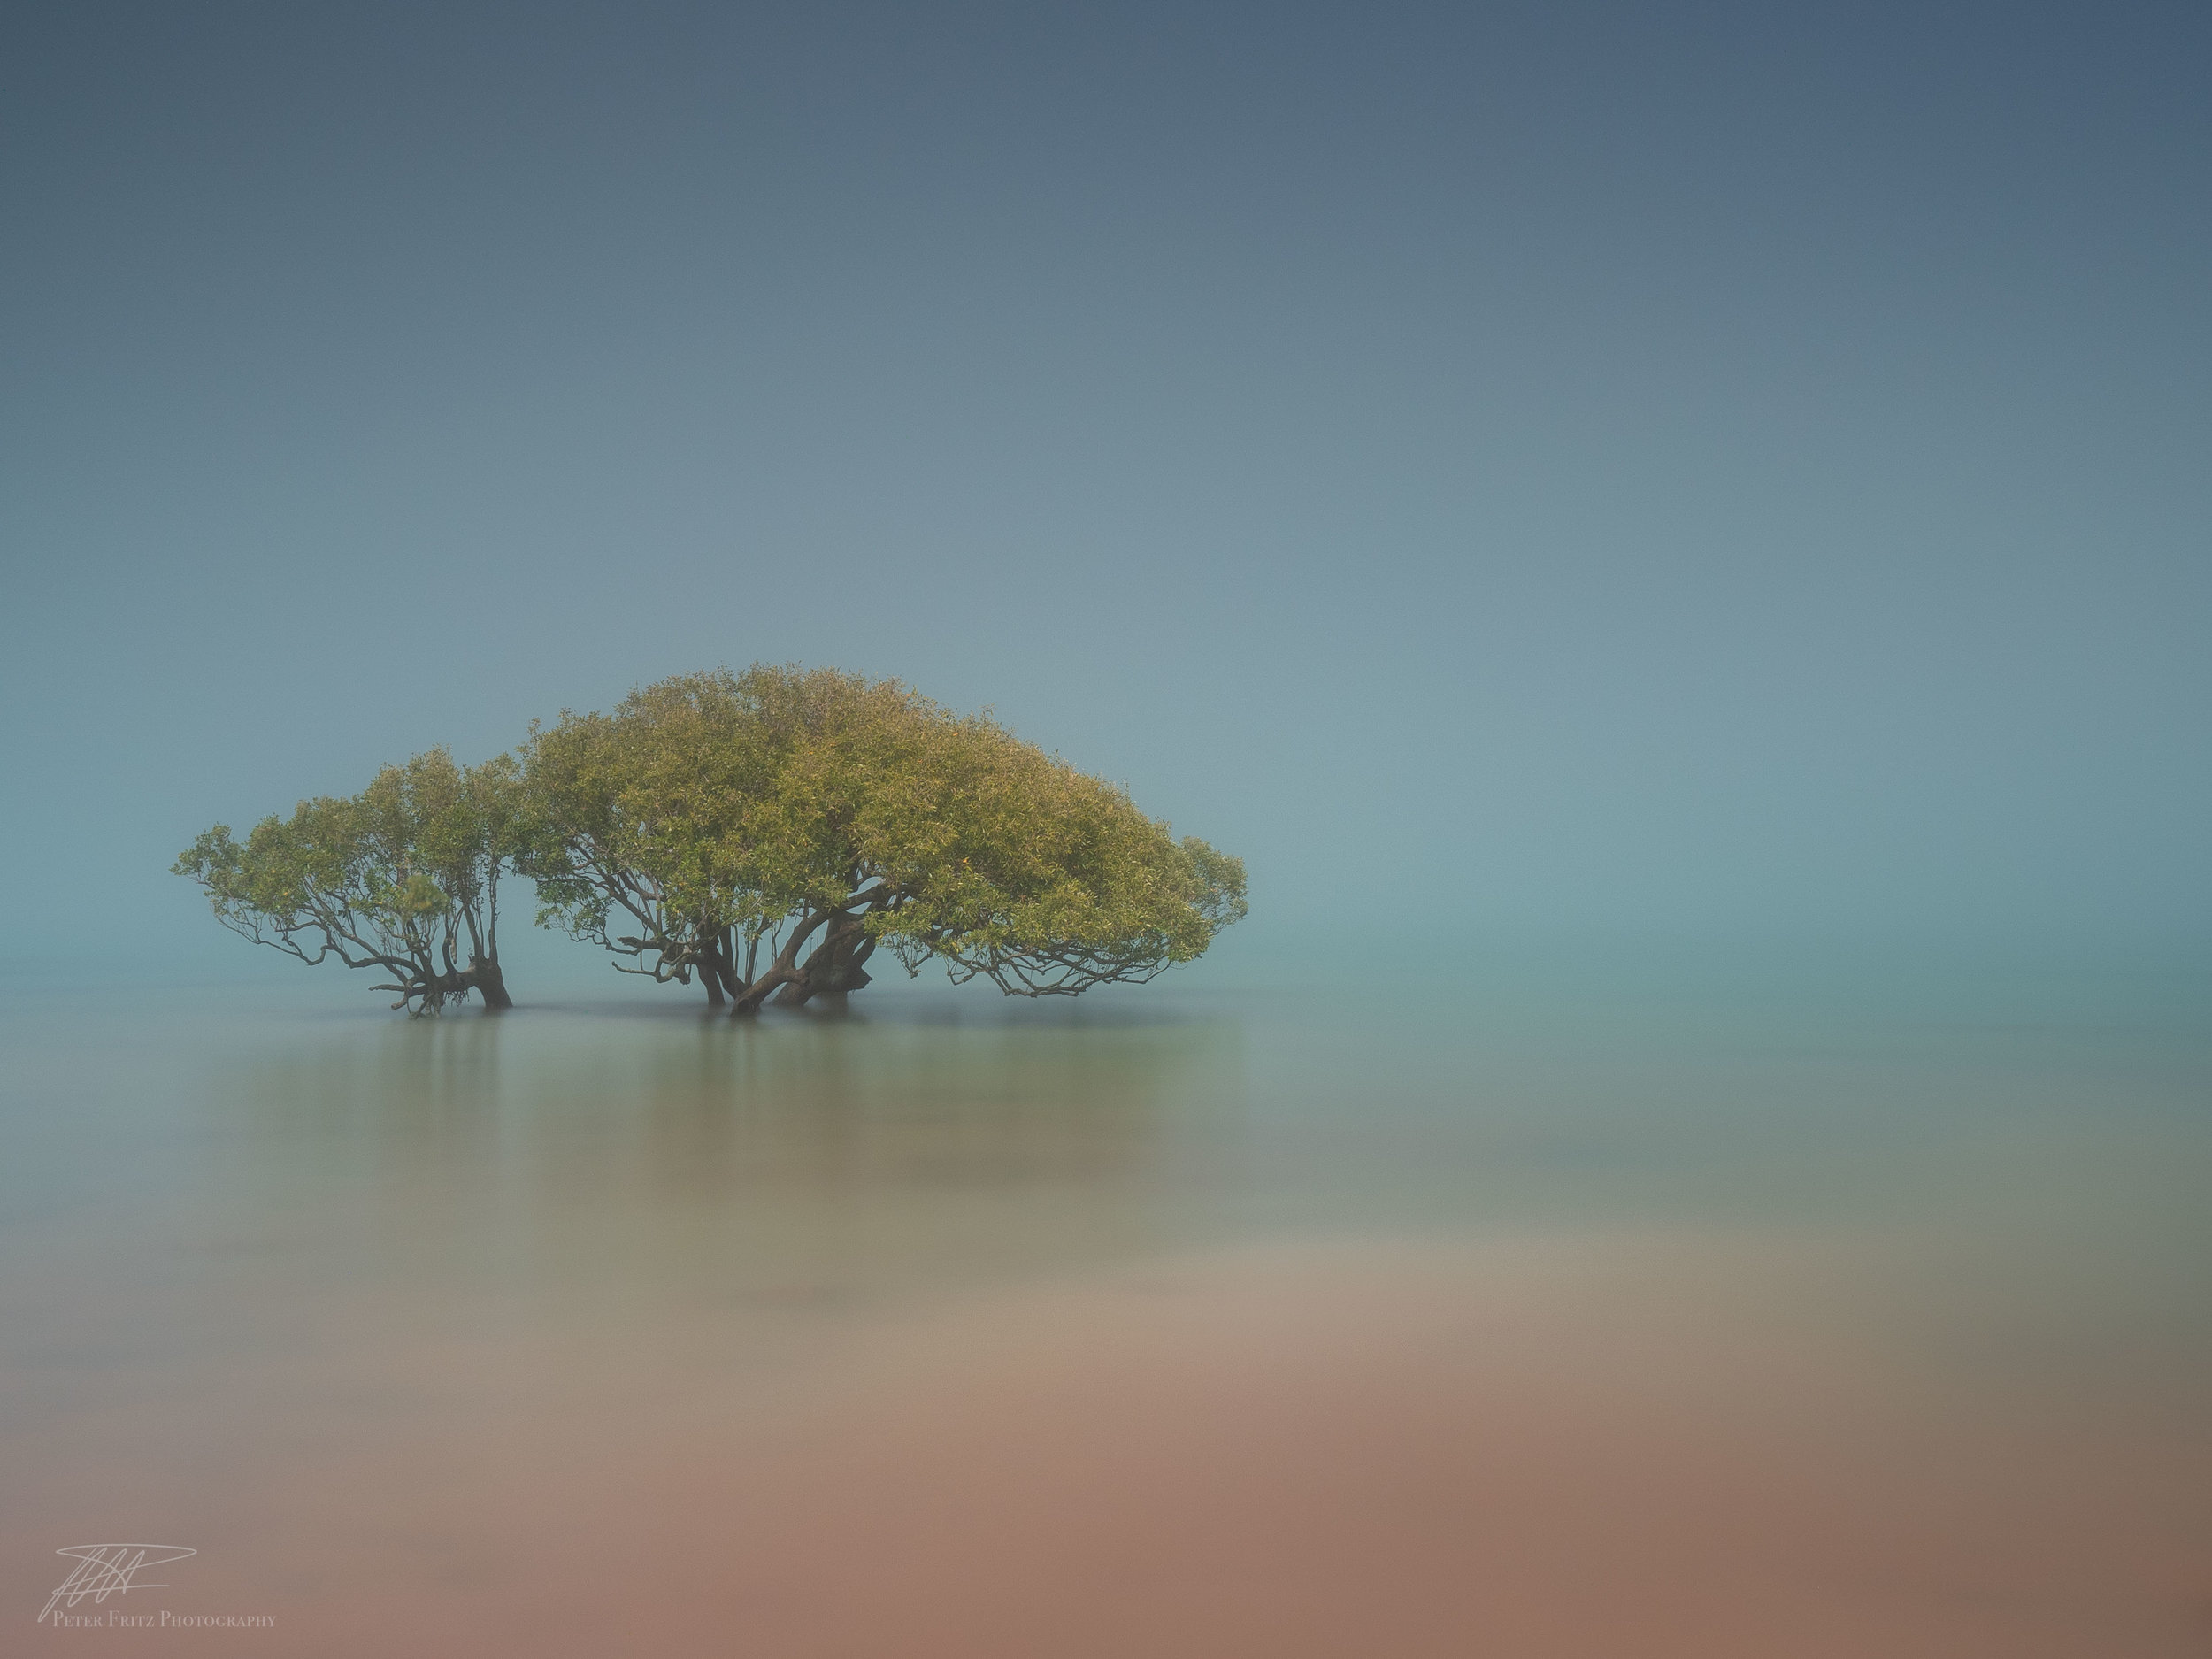 Colours of Broome in Fog  4x3 web.jpg